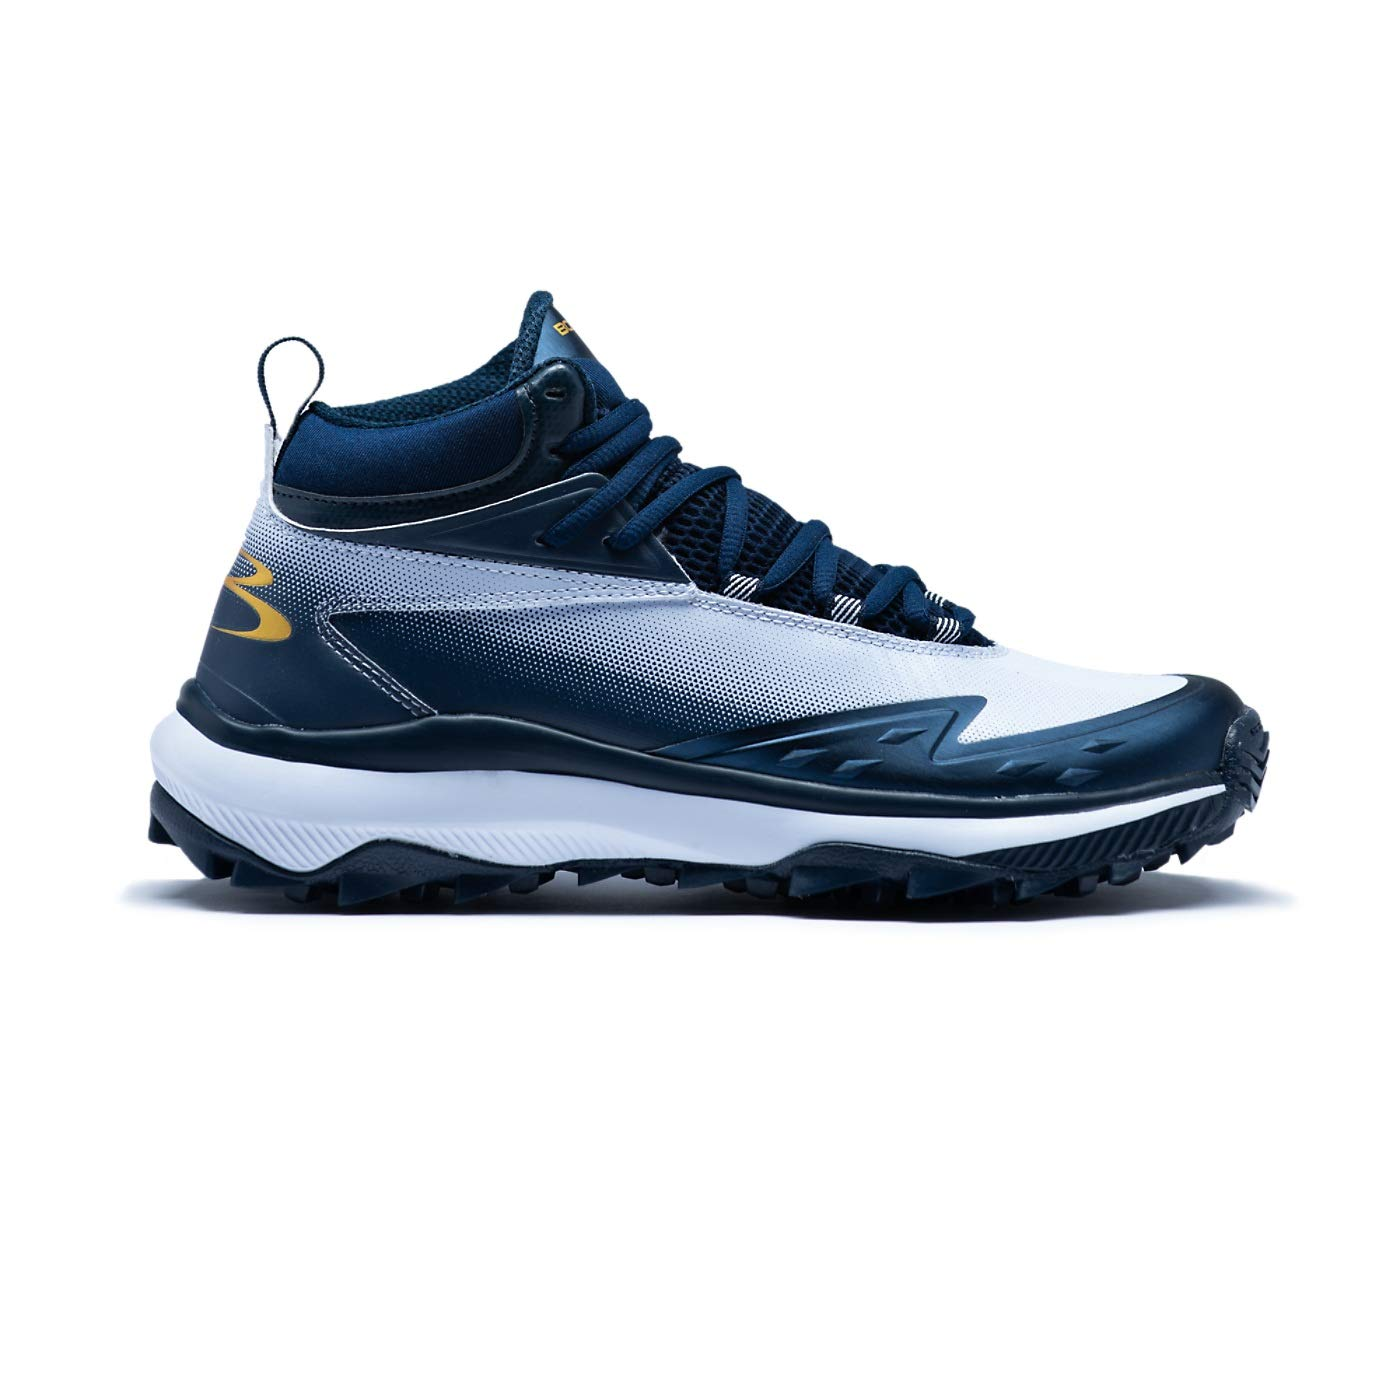 Boombah Men's Commander Mid Turf Shoes Navy/White - Size 11 by Boombah